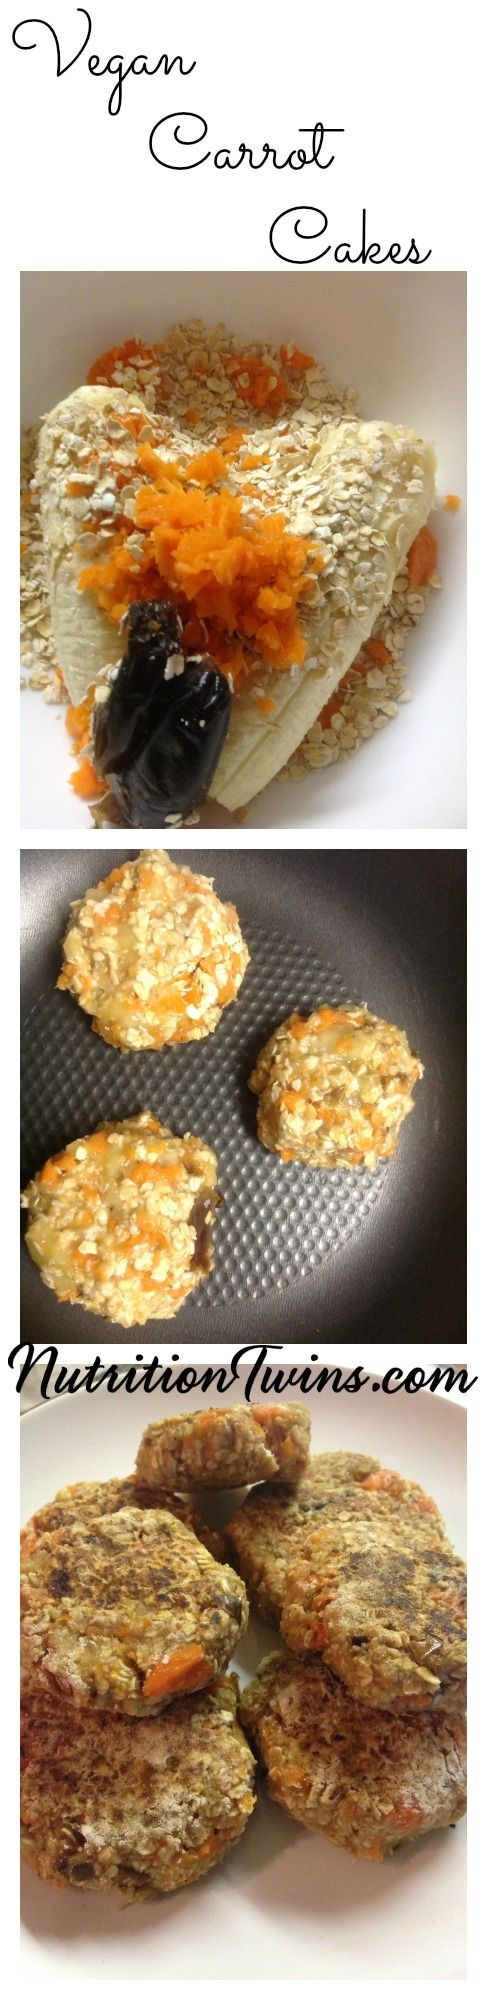 Mini Vegan Carrot Cakes | Only 65 Calories | Tastes like dessert, But Healthy enough to be with dinner | No added Sugar & Only 5 Ingredients |For MORE RECIPES, Fitness & Nutrition Tips please SIGN UP for our FREE NEWSLETTER www.NutritionTwins.com